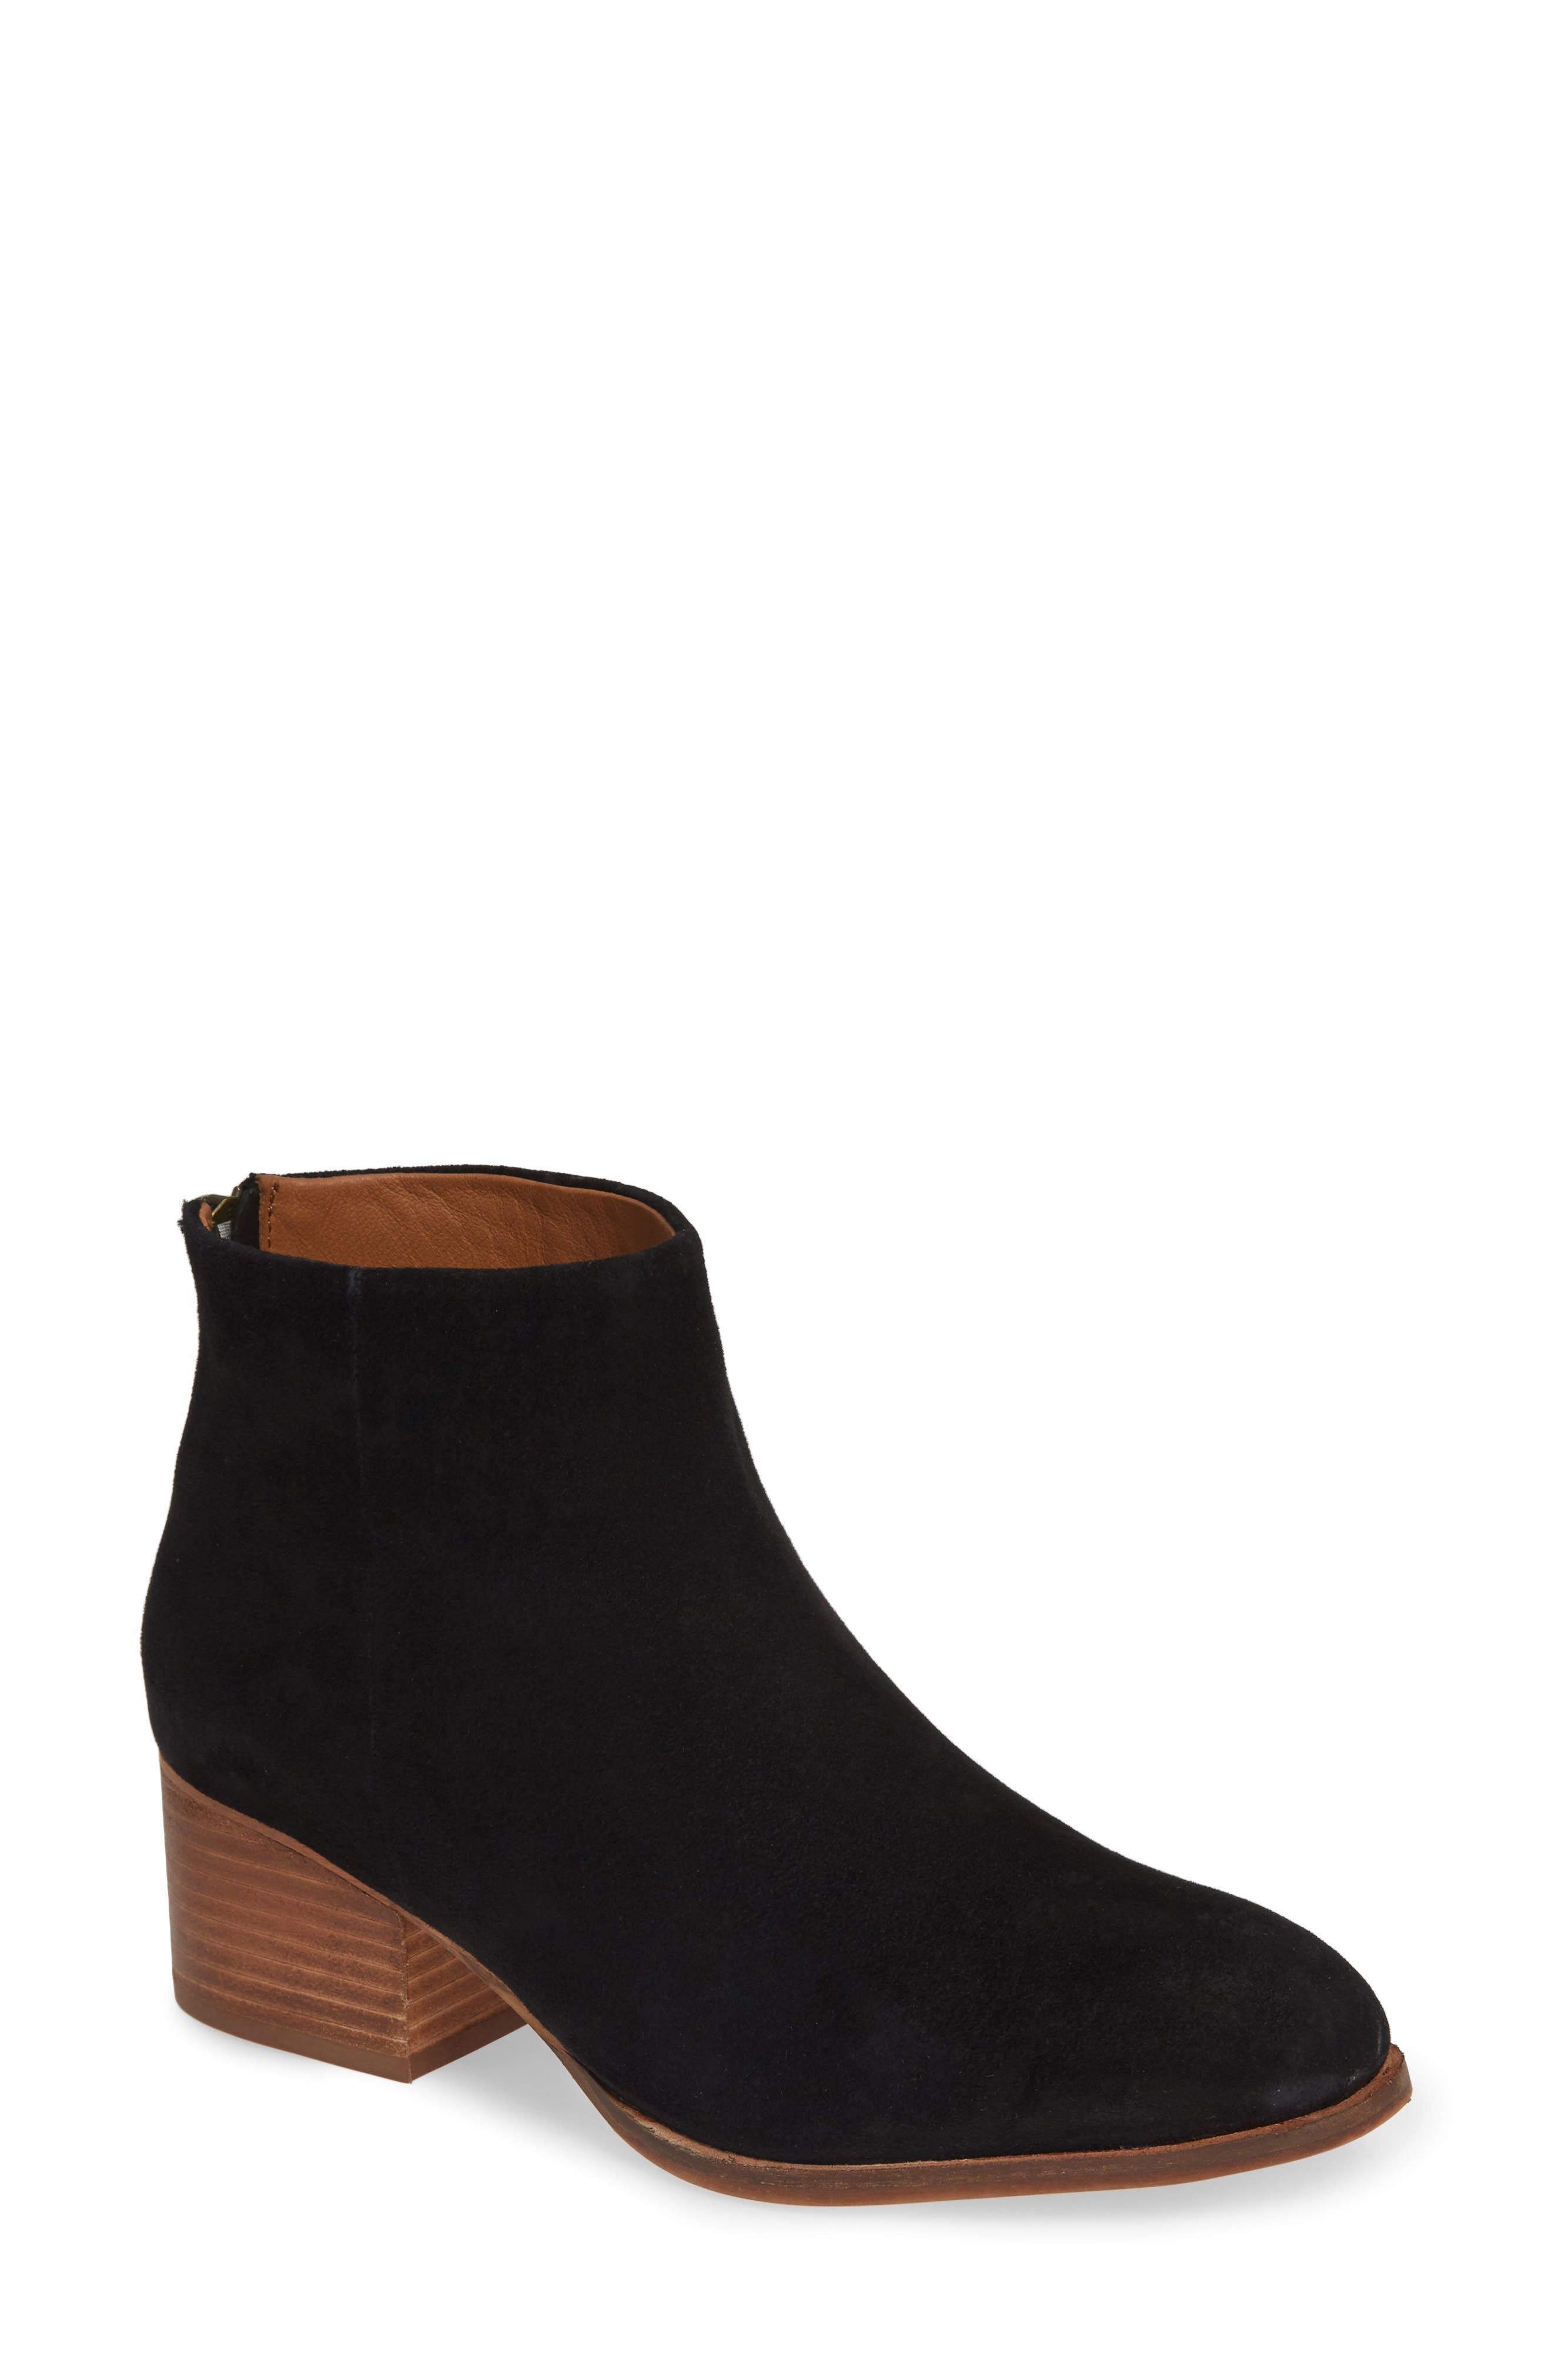 Floodplain Block Heel Bootie,                         Main,                         color, BLACK SUEDE